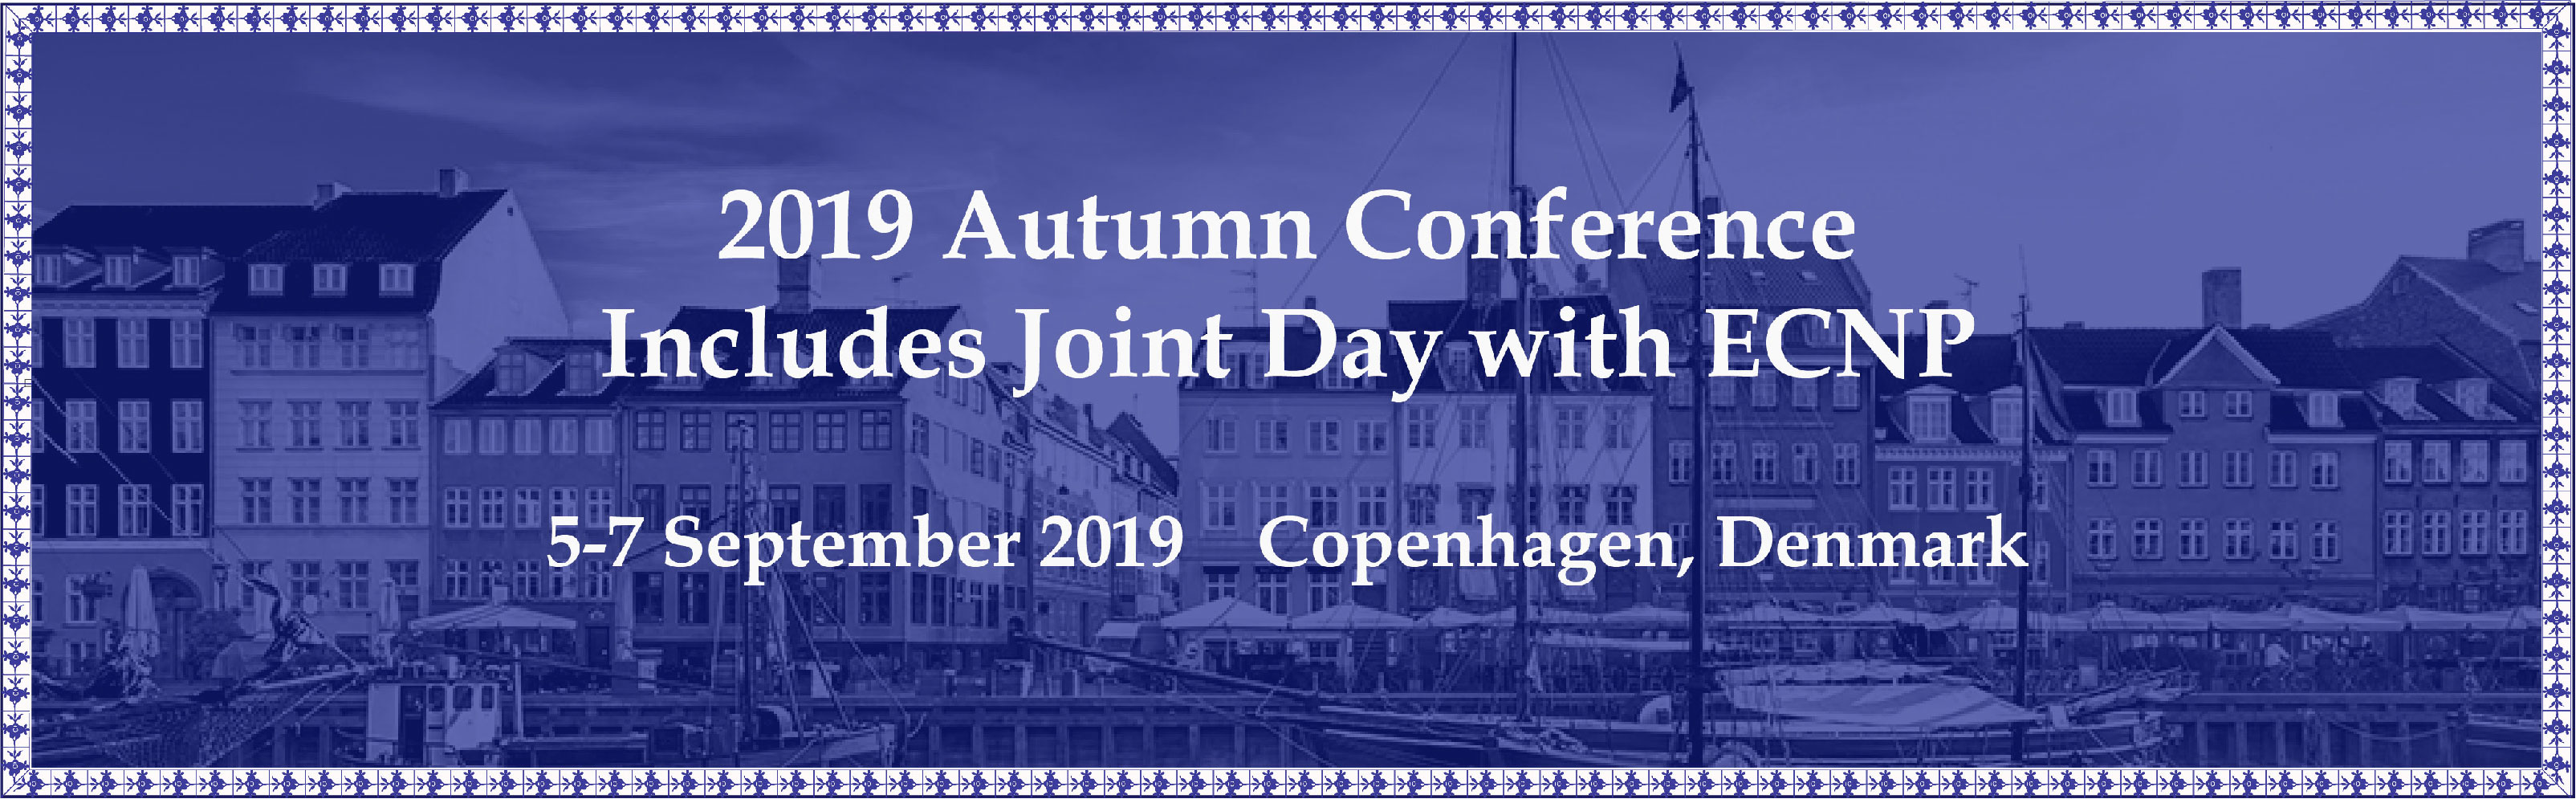 2019 'Autumn' Conference - Includes Joint Day with ECNP